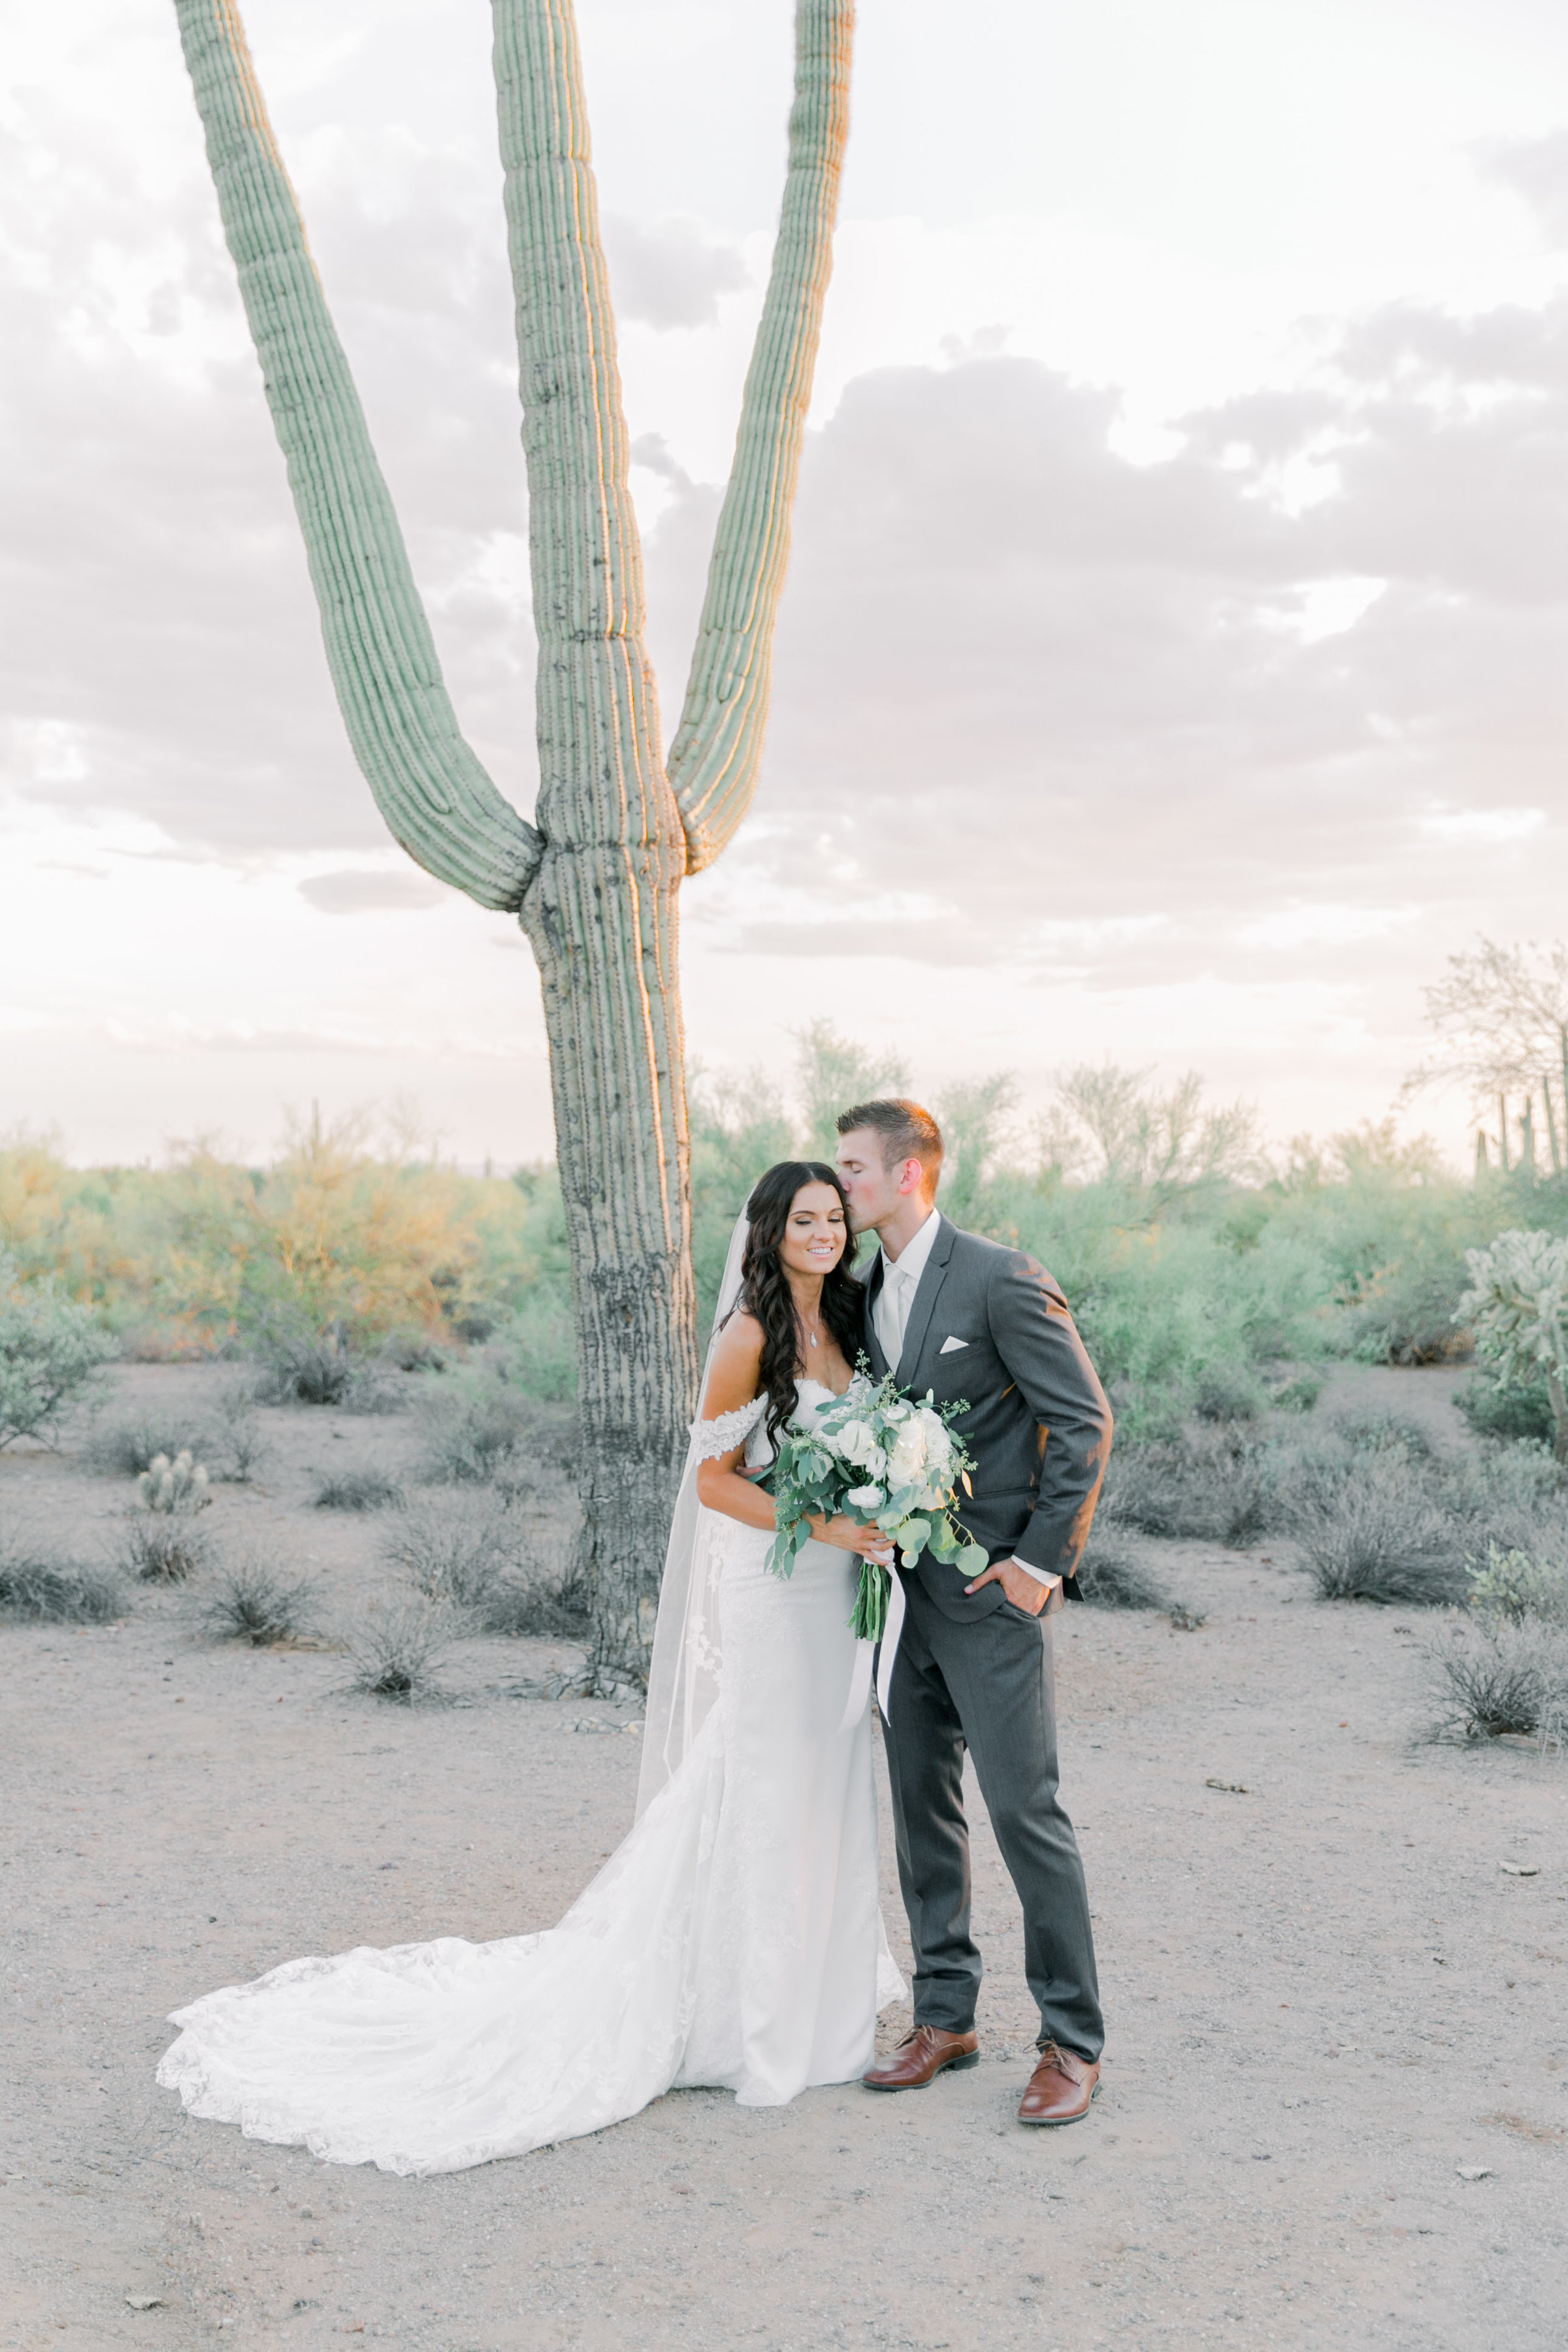 Karlie Colleen Photography - Arizona Wedding - The Paseo Venue - Jackie & Ryan -597